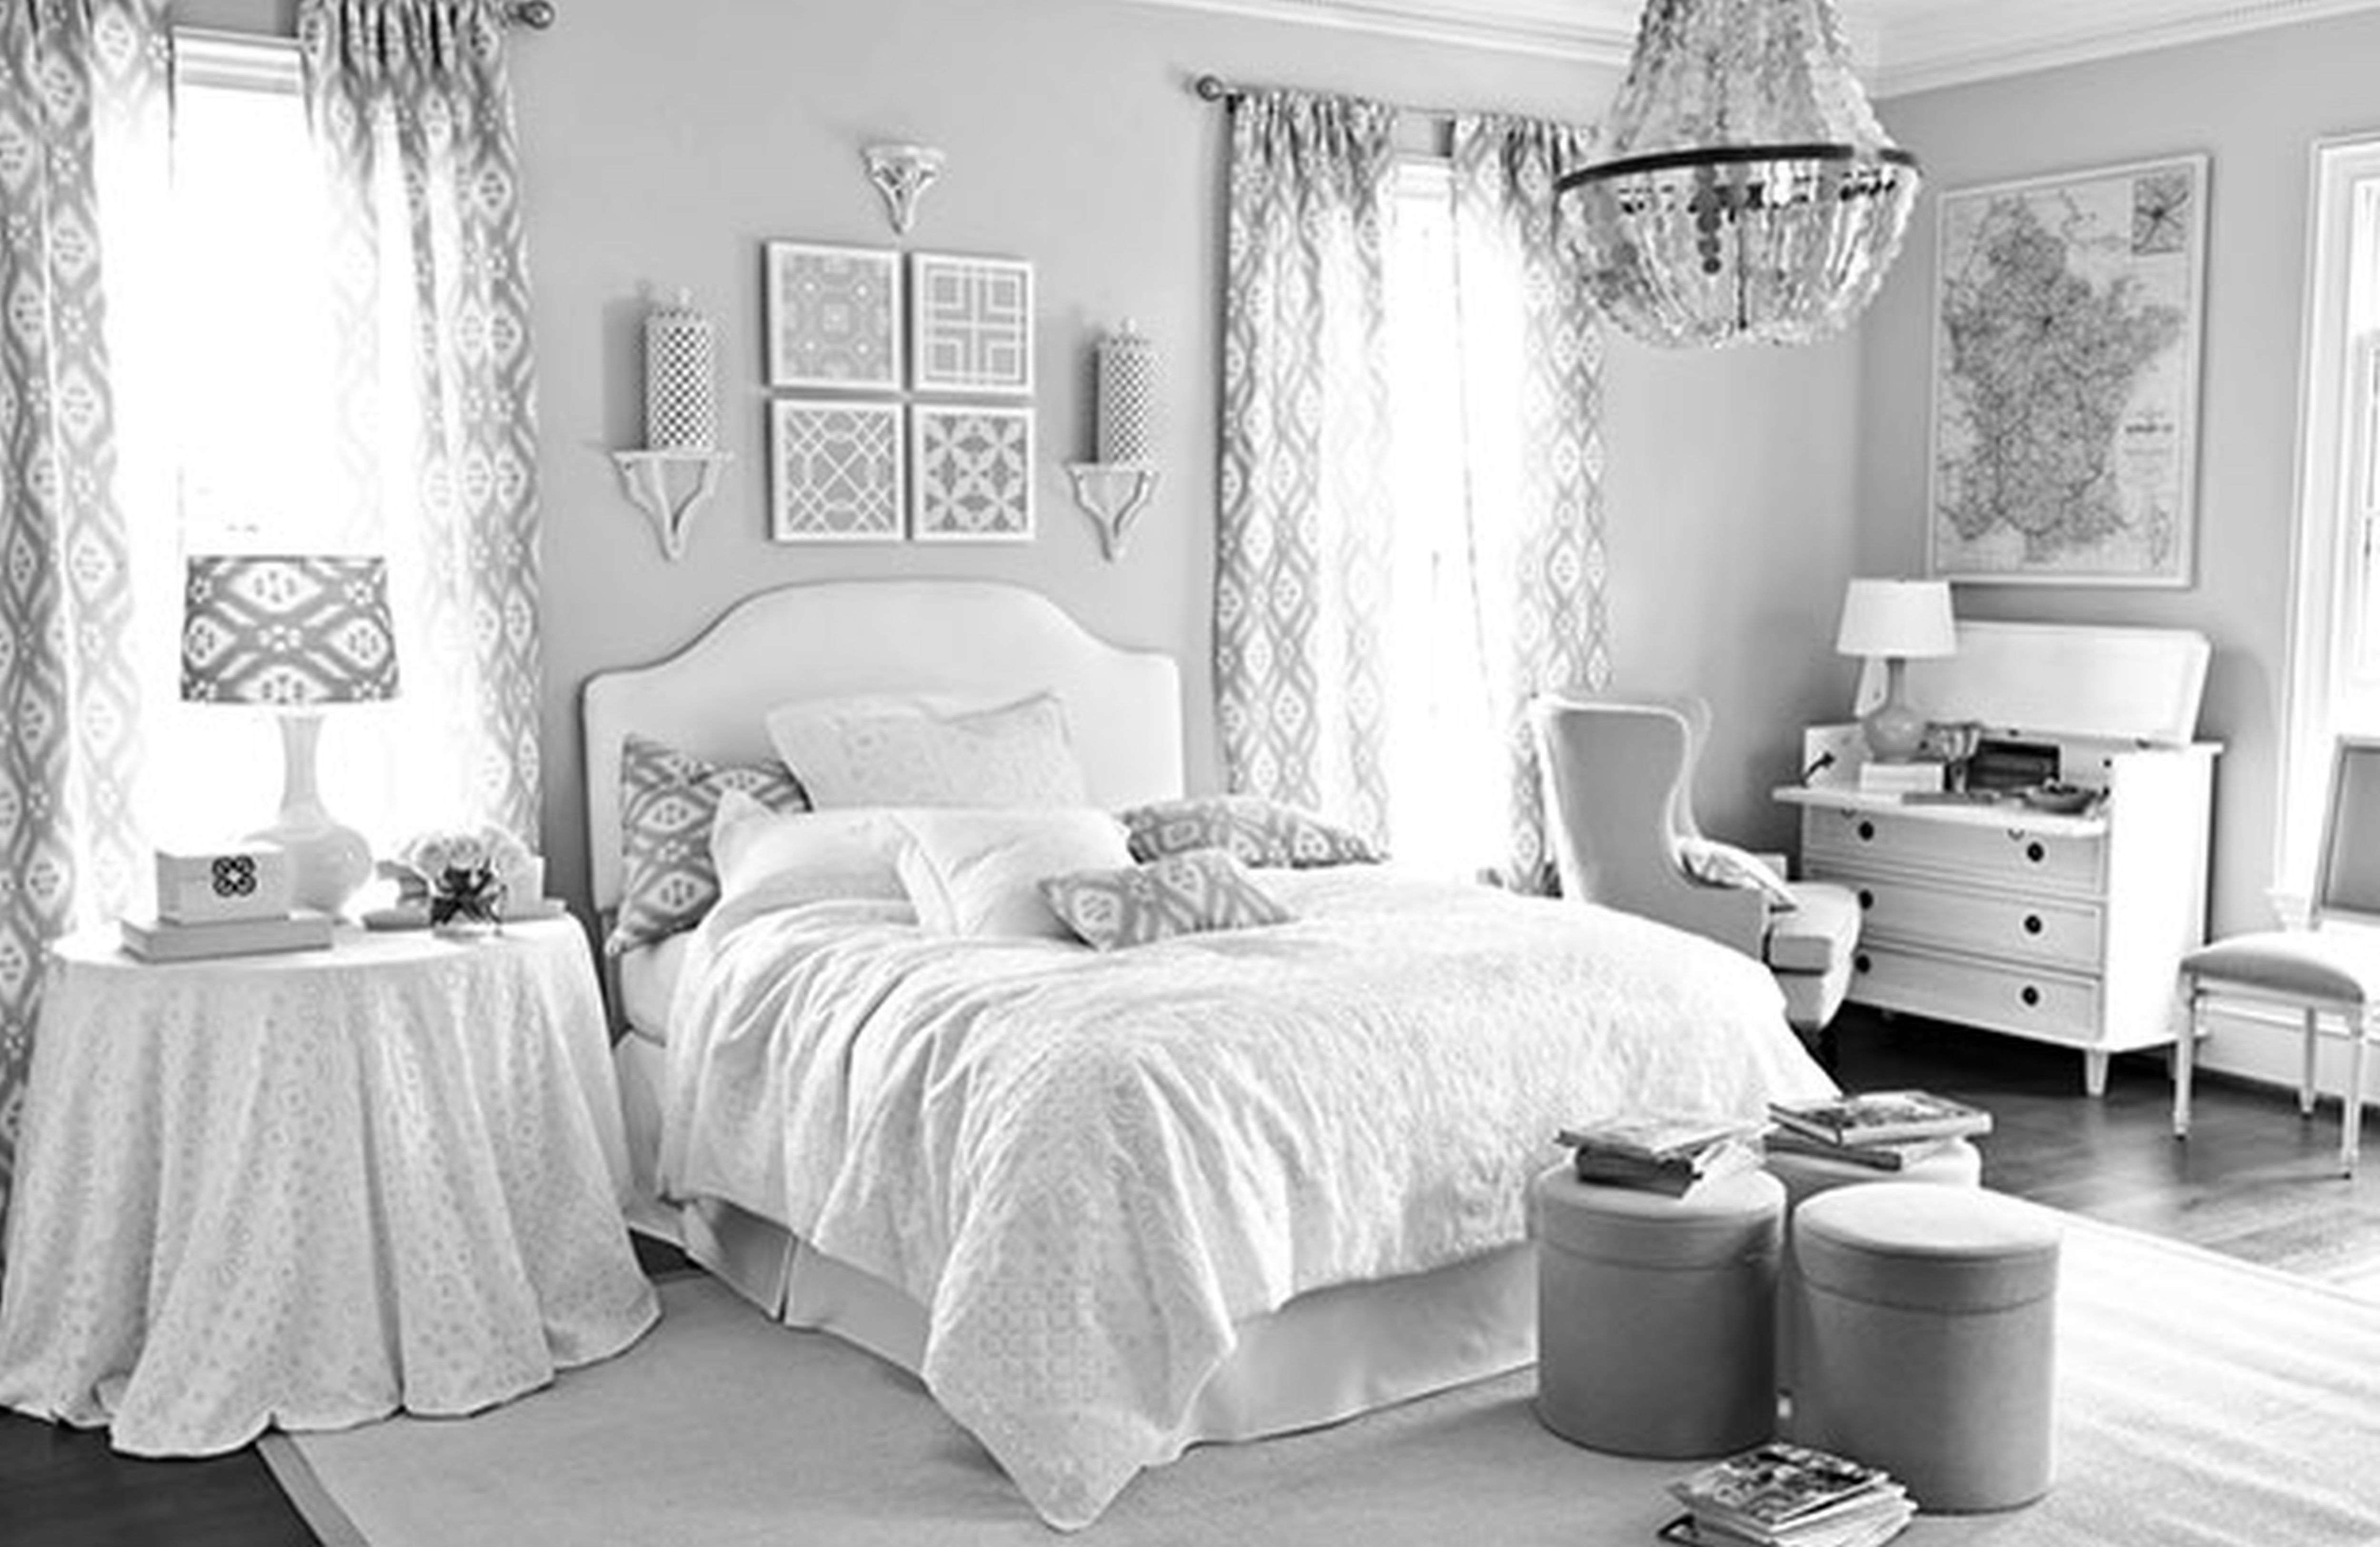 10 Cute Cute Ideas For Your Room bedroom ideas room decorating teenage girls for clean cute and diy 2020